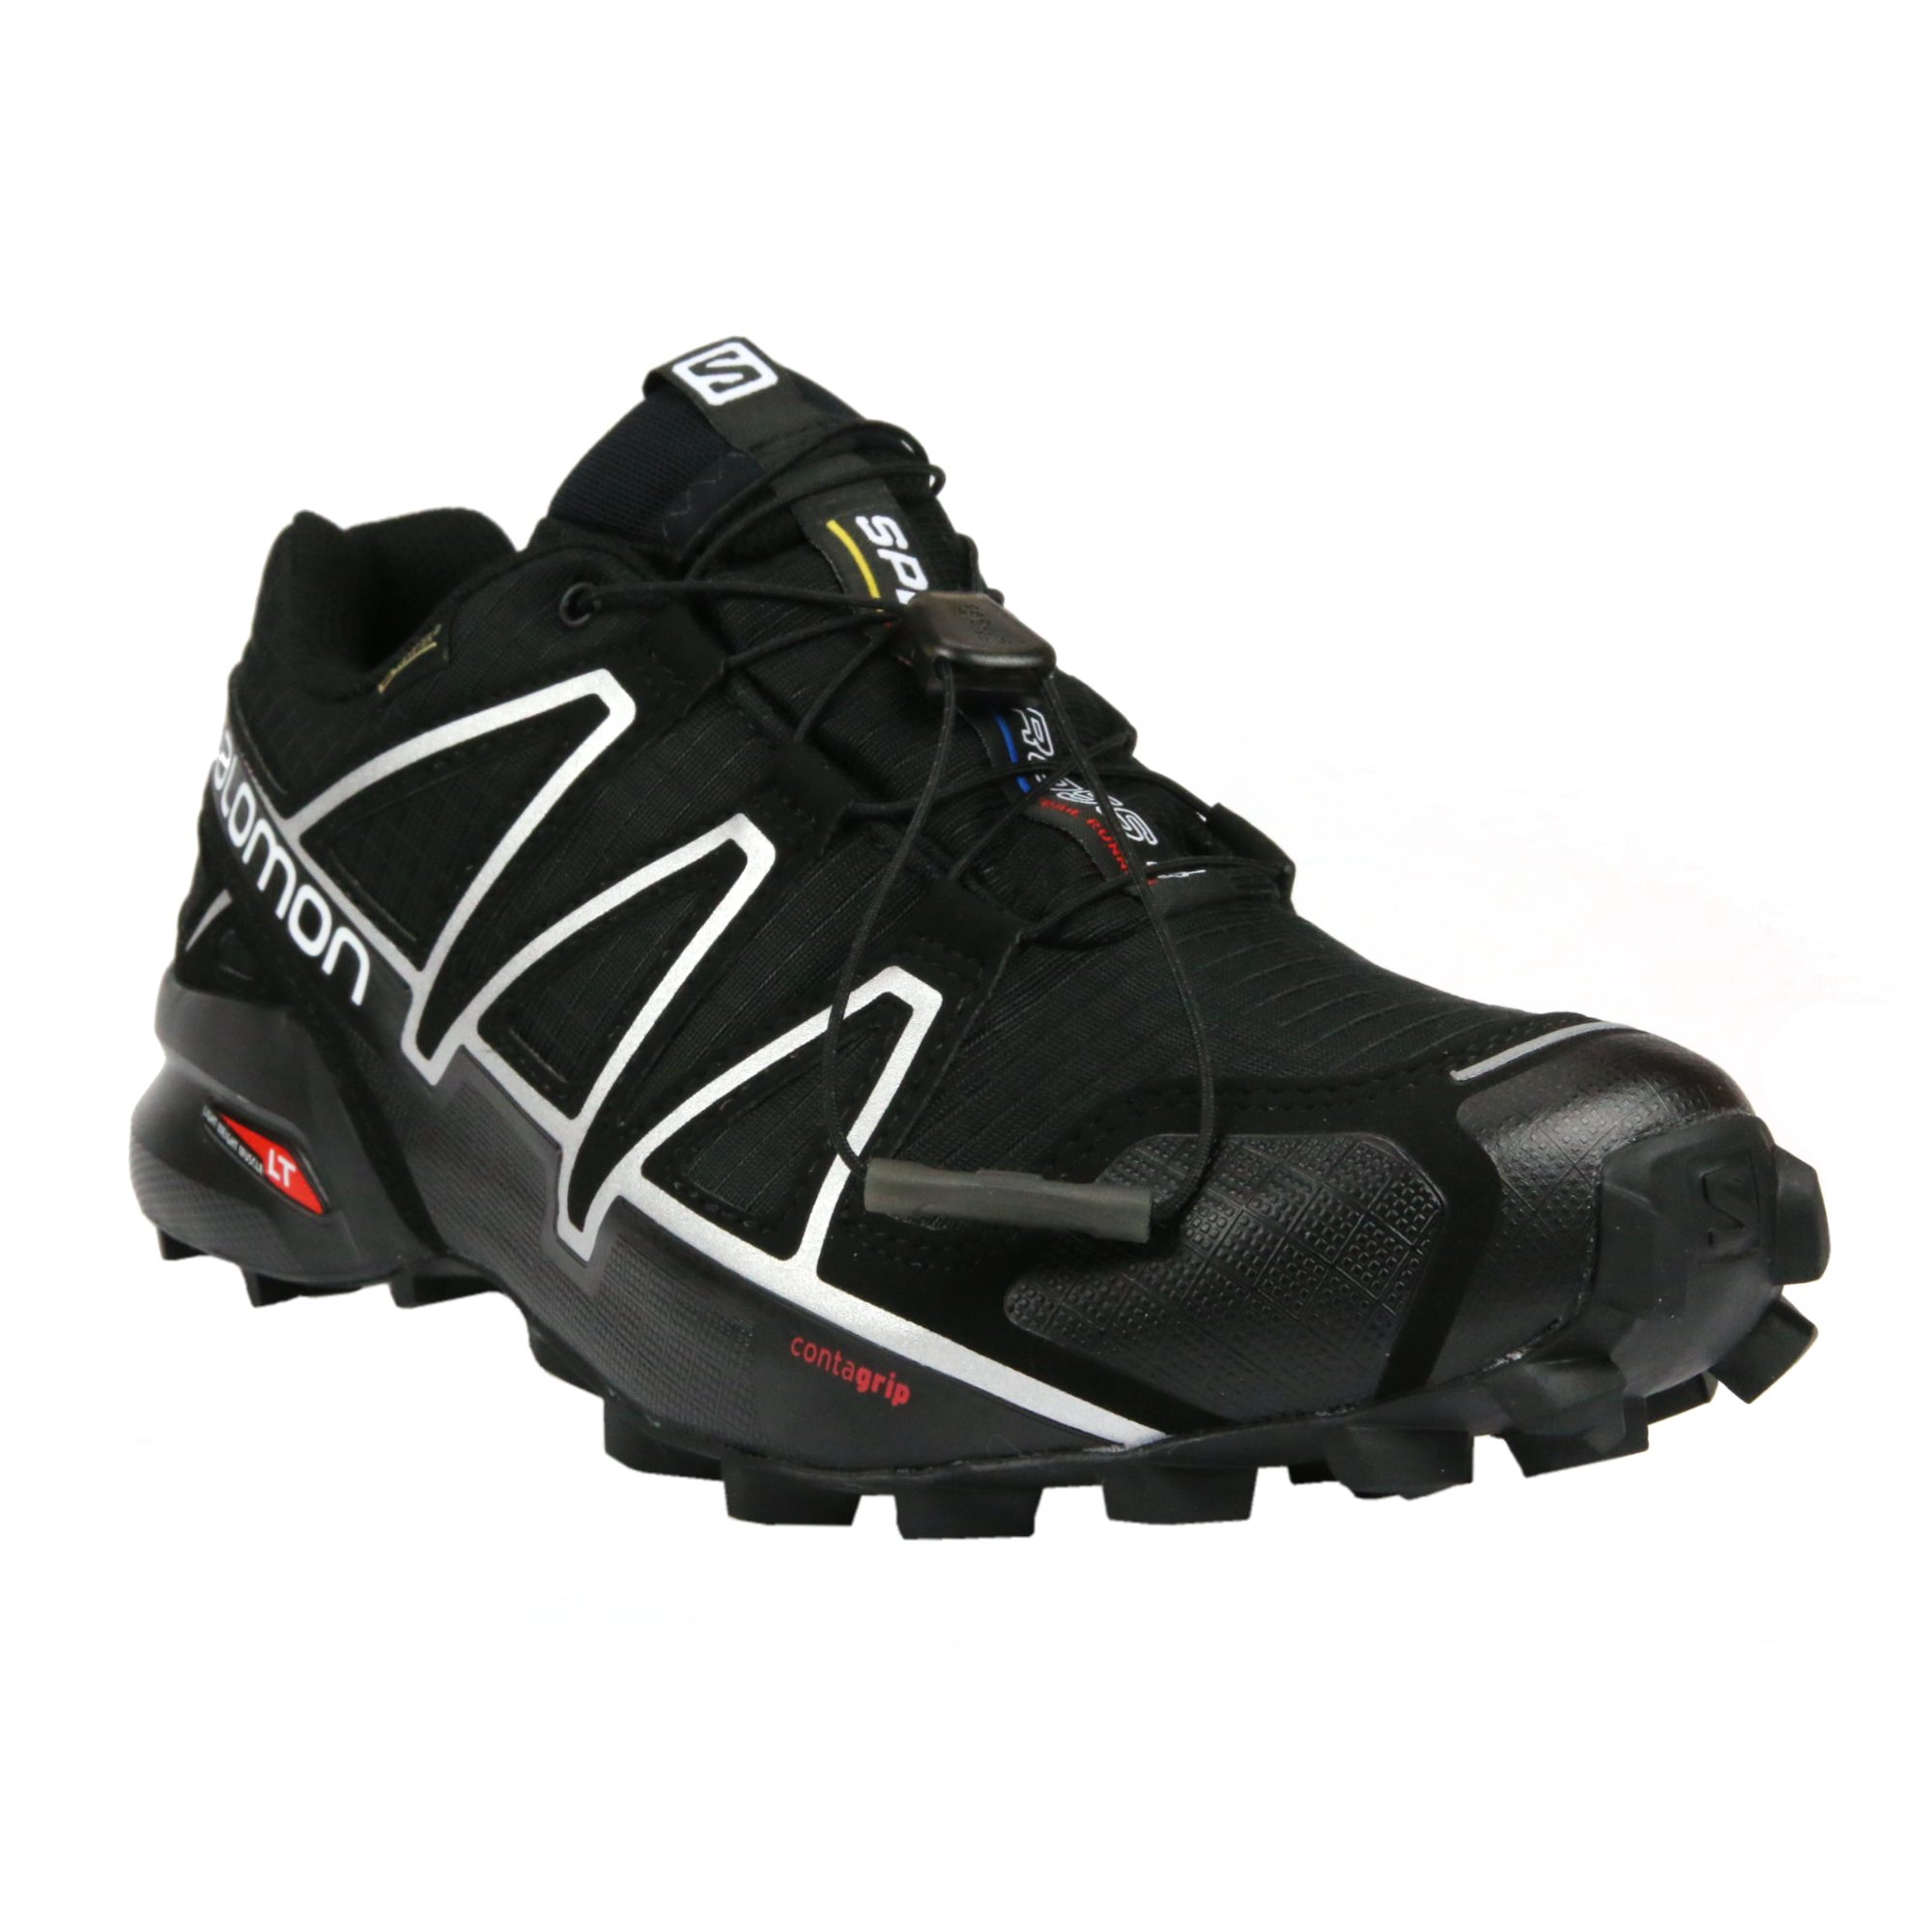 Salomon Speedcross 4 Opinioni